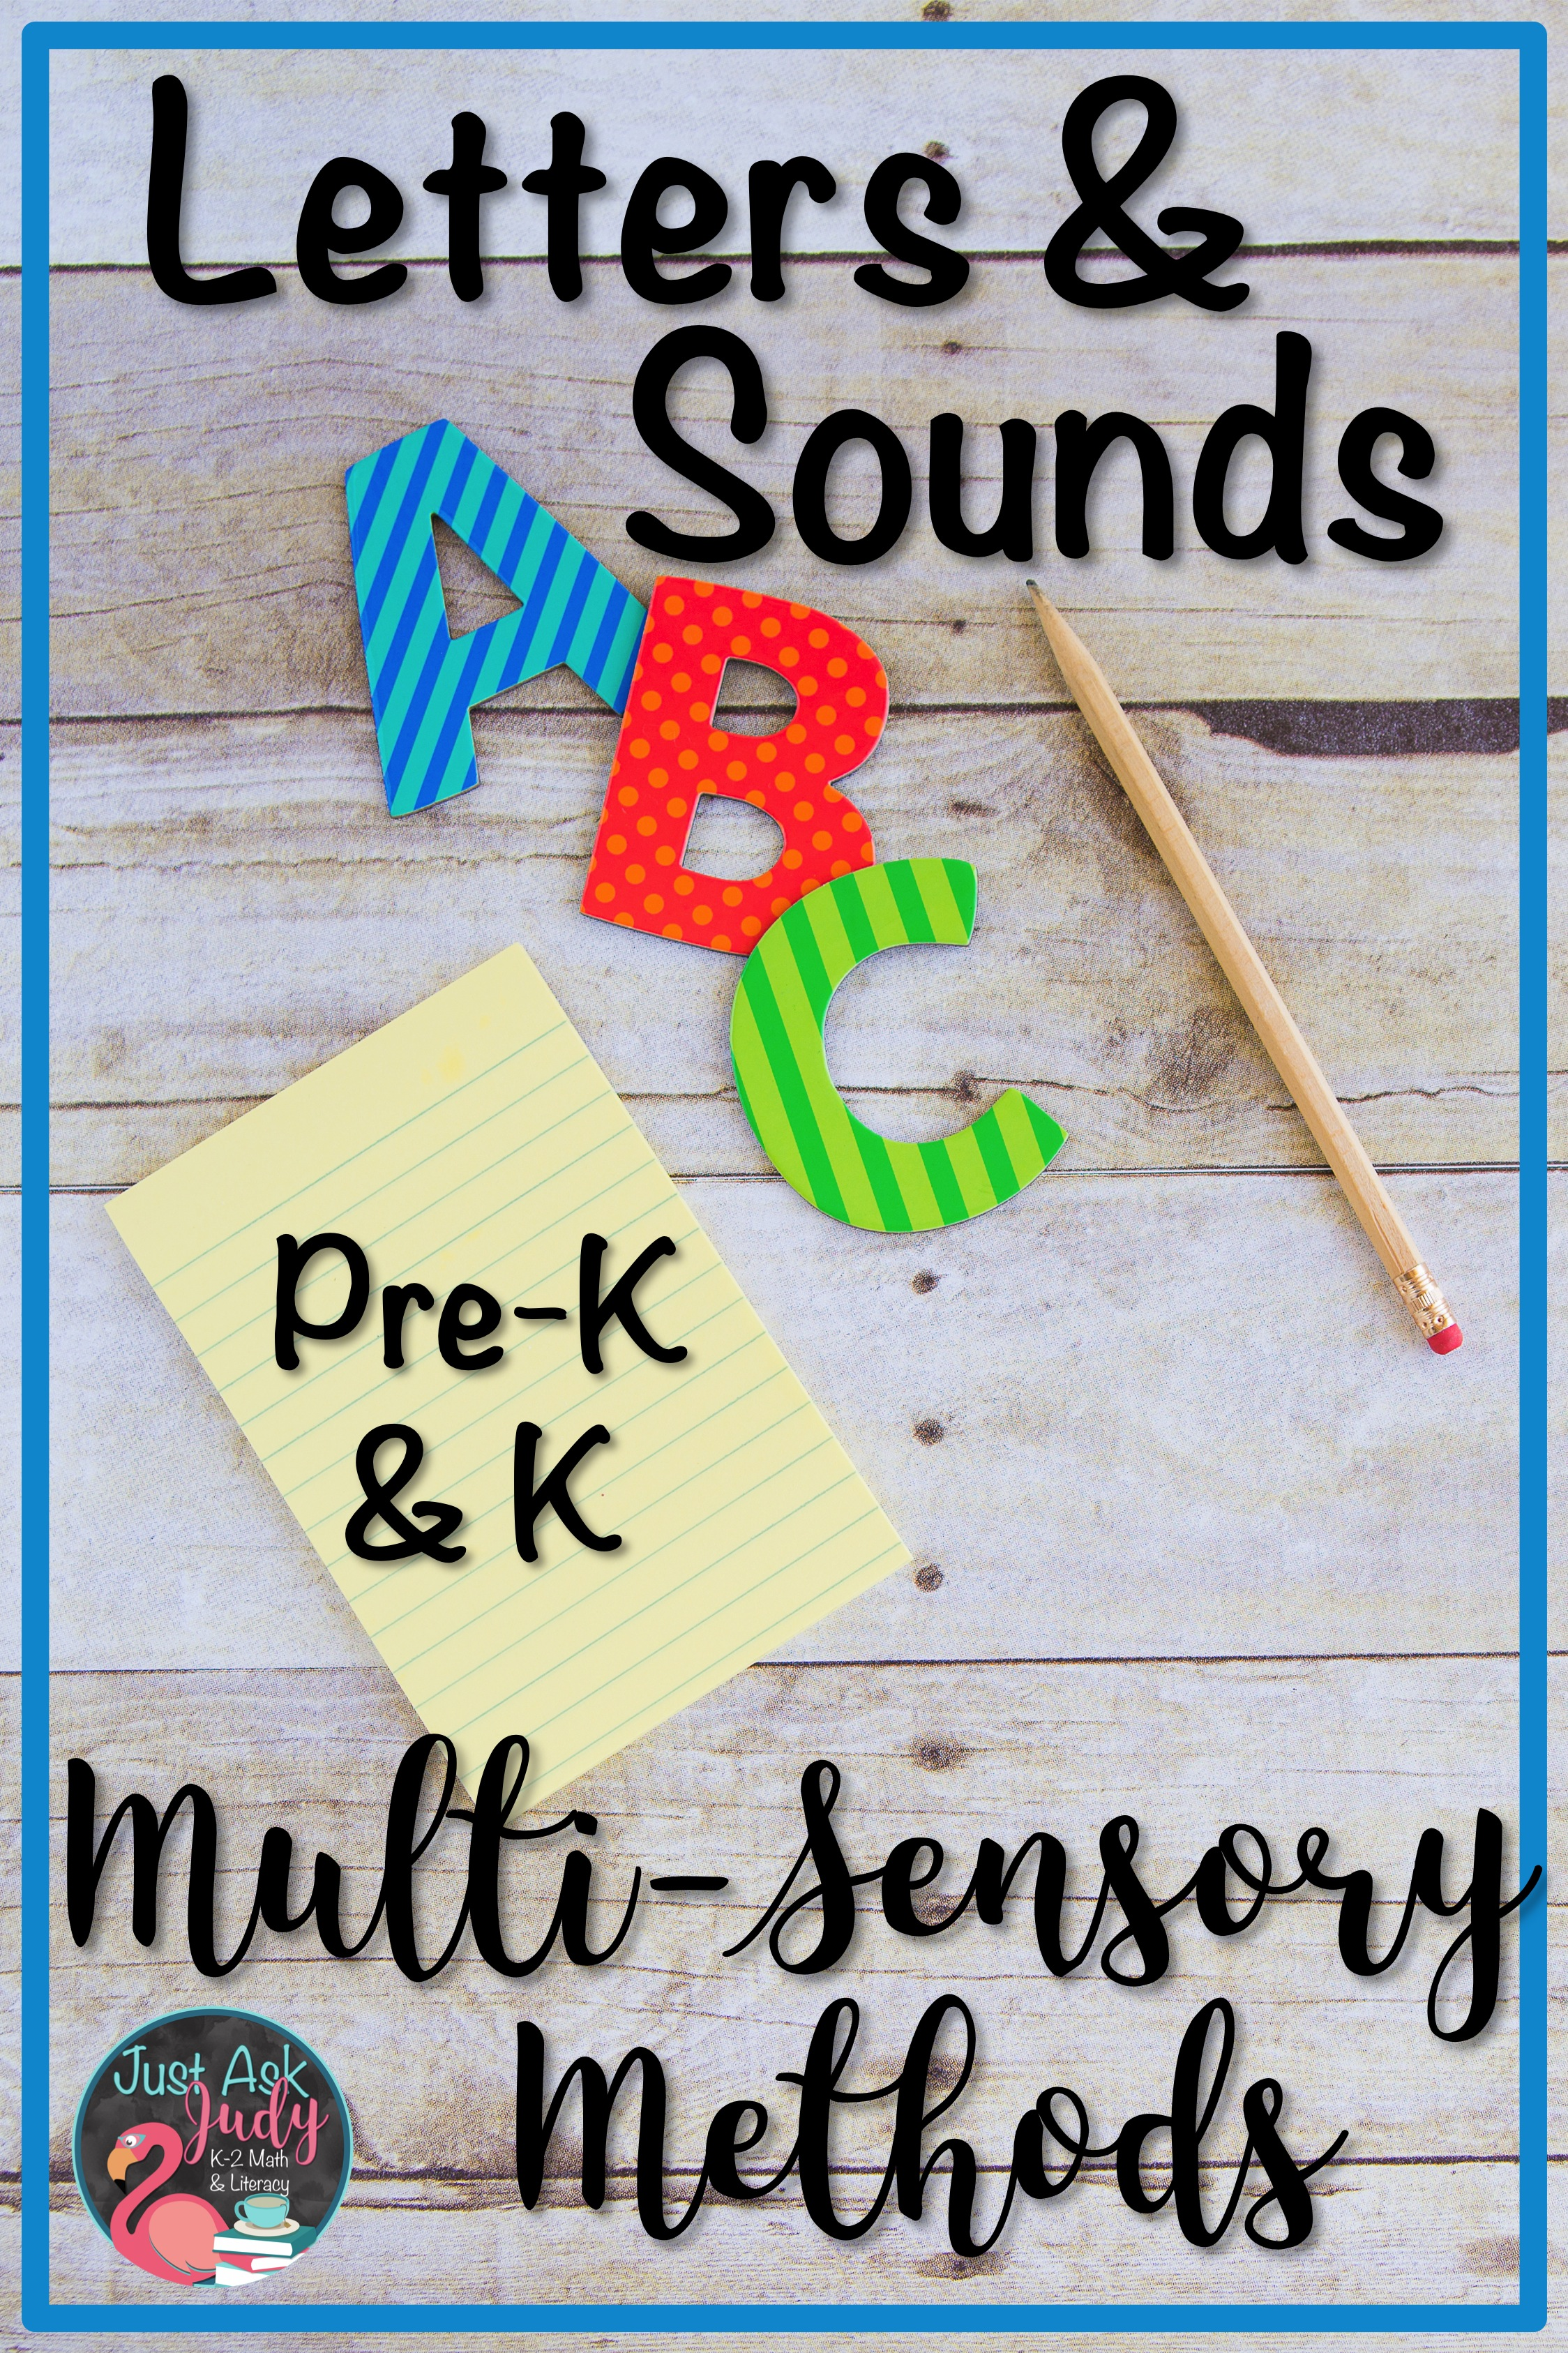 How To Effectively Introduce Letters And Sounds The Multi Sensory Way Just Ask Judy